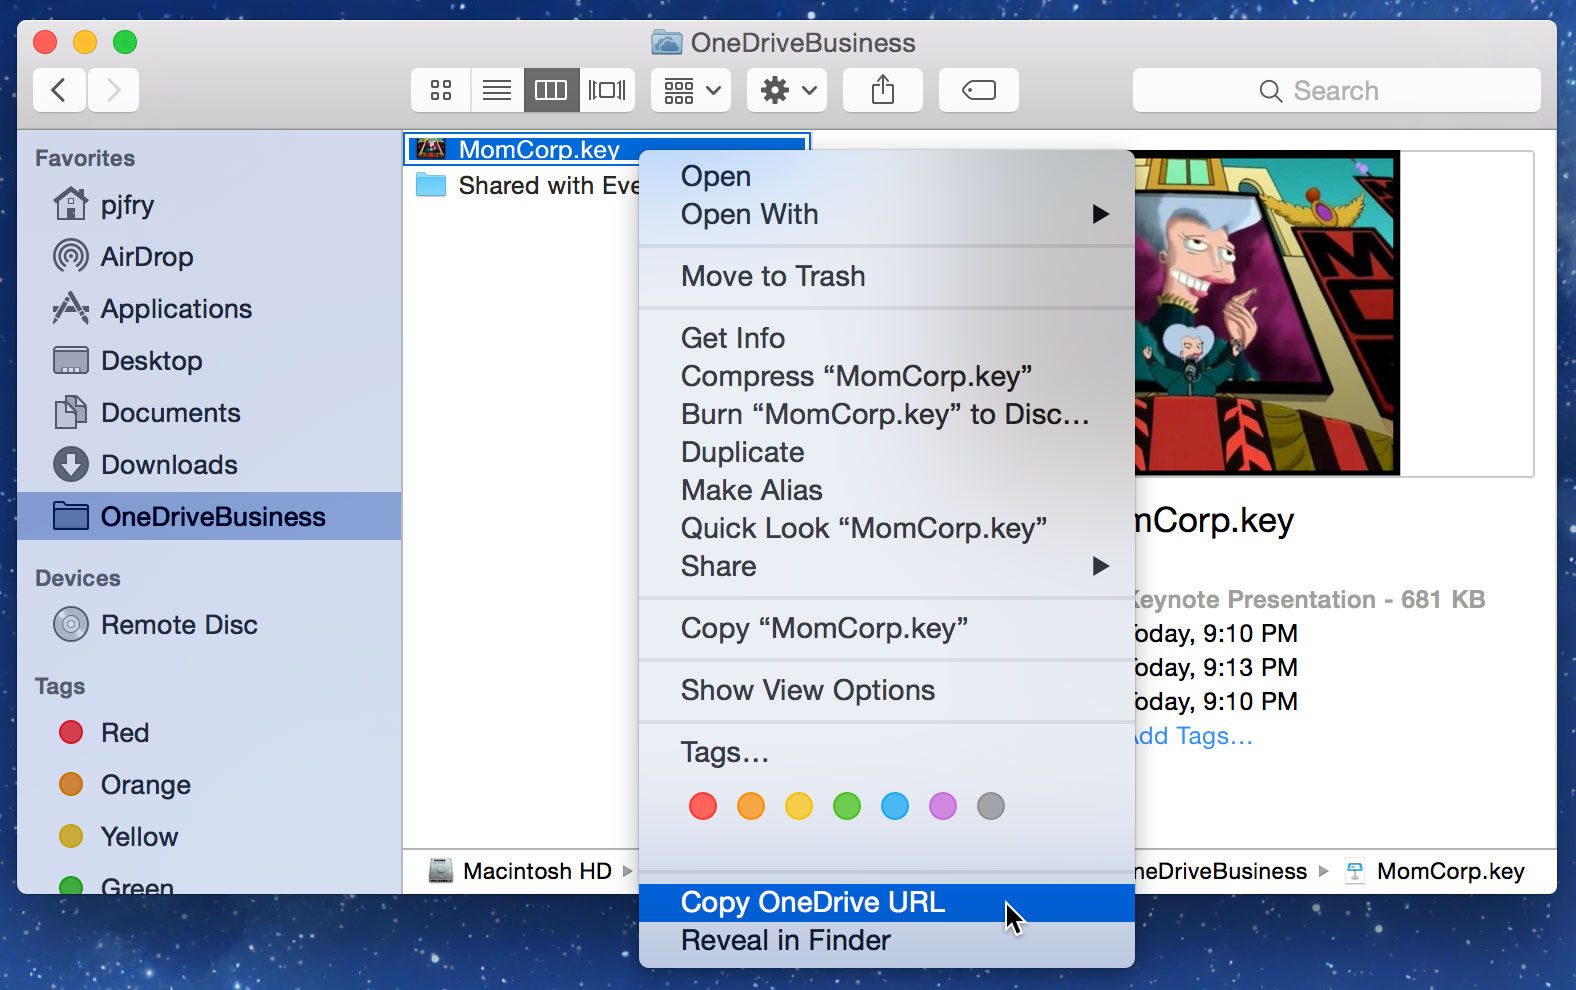 Barry Simpson - Sharing Screenshots on the Mac Using